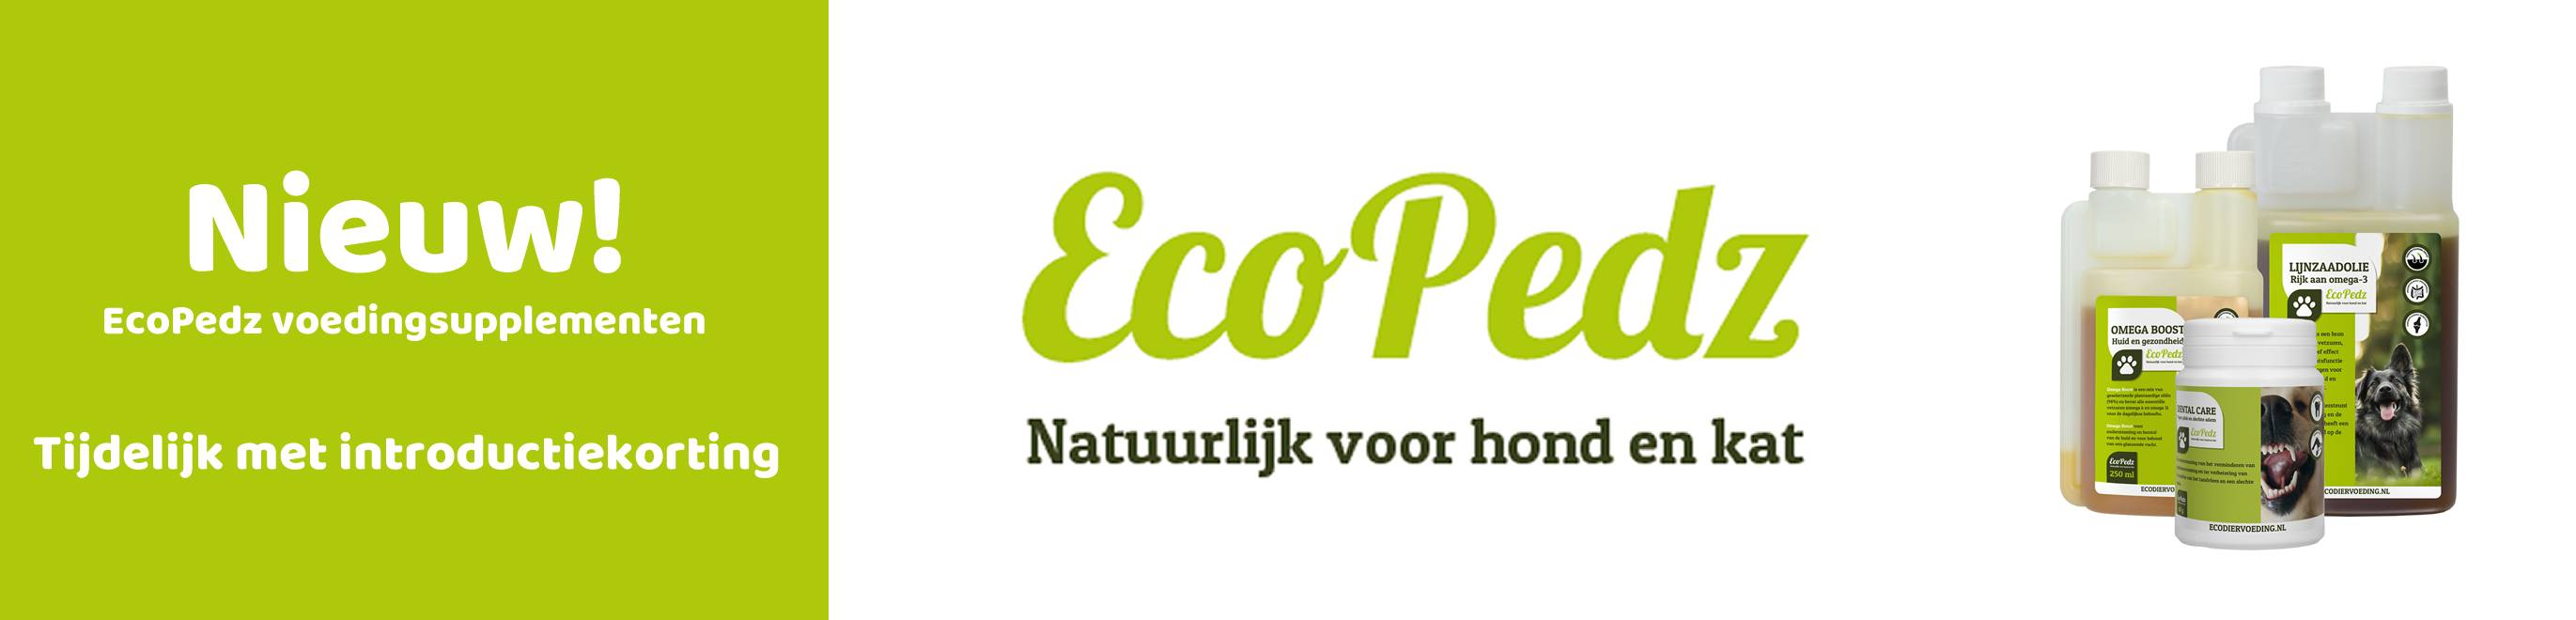 EcoPedz introductiekorting